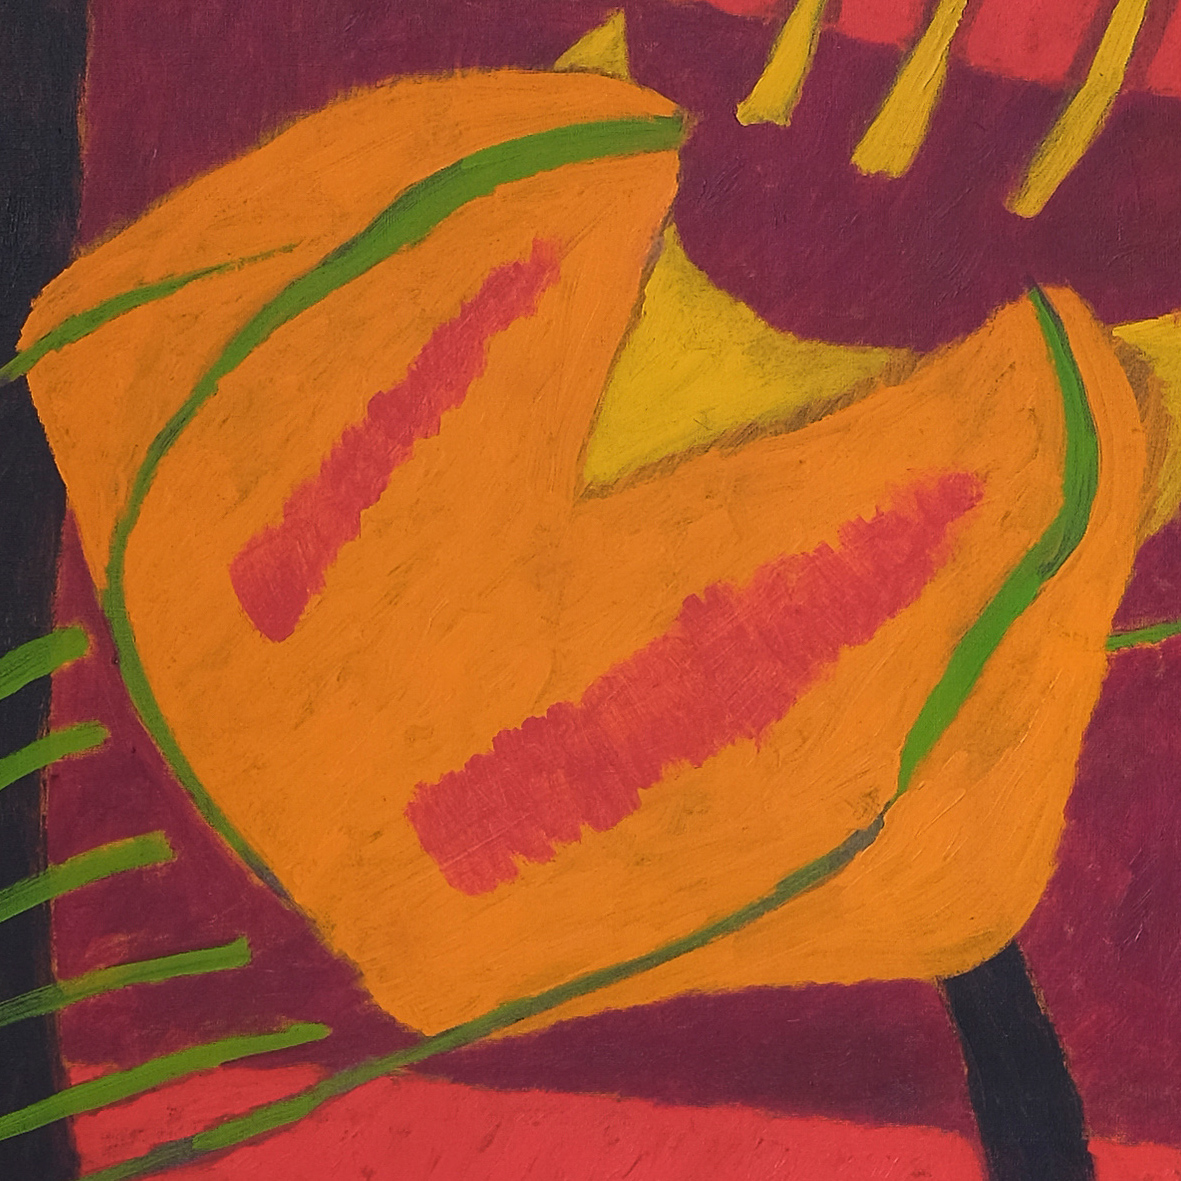 Nashar, Bertumbuh (Growth), oil on canvas, 137 x 88 cm, 1979 (detail)